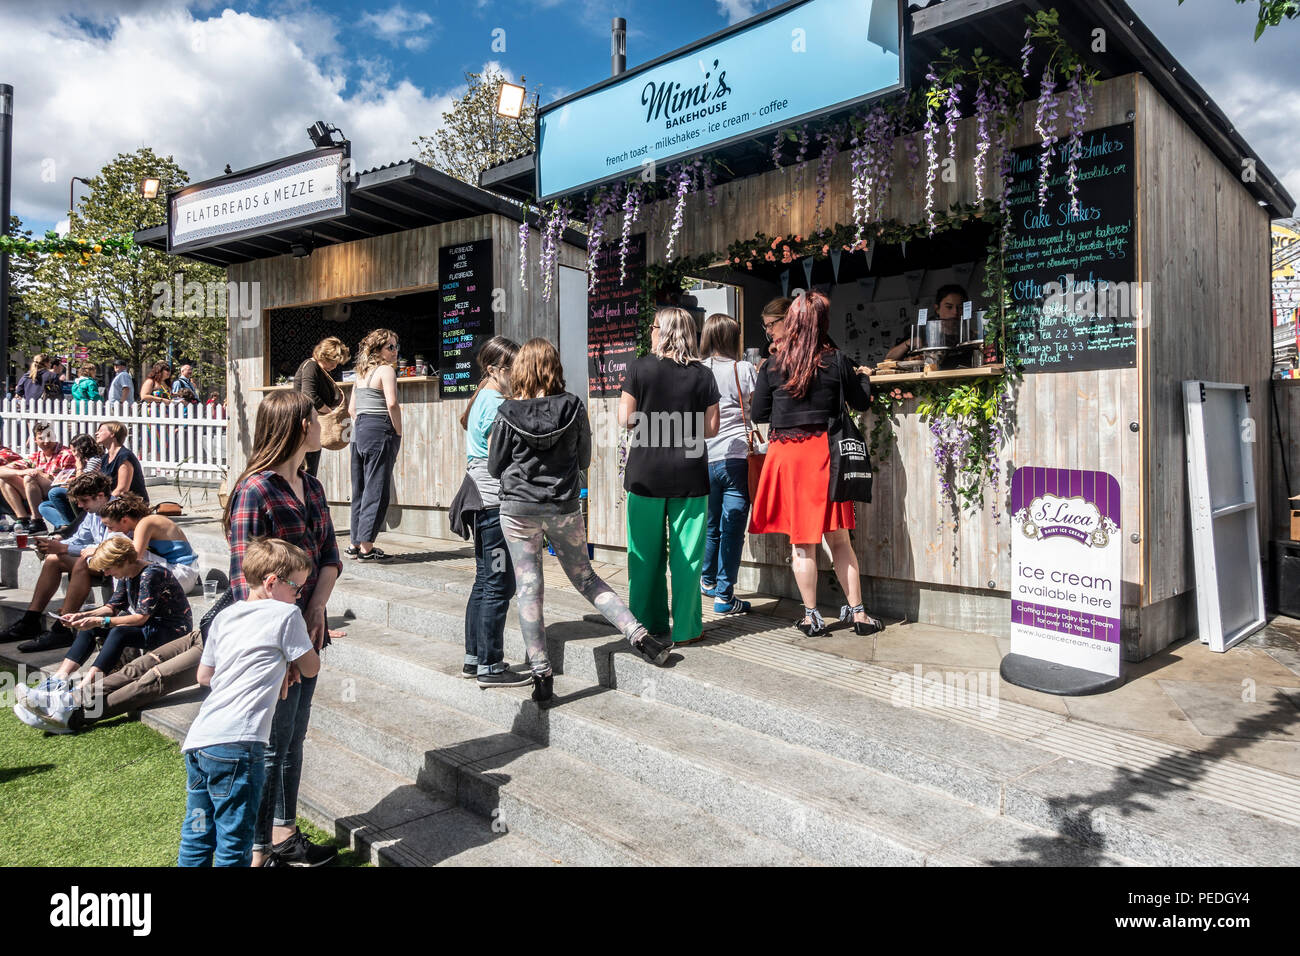 Visitors to Edinburgh Festival Fringe enjoying August sunshine and queuing at pop-up food stalls, Mimi's Bakehouse and Flatbreads & Mezze in Bristo Sq - Stock Image